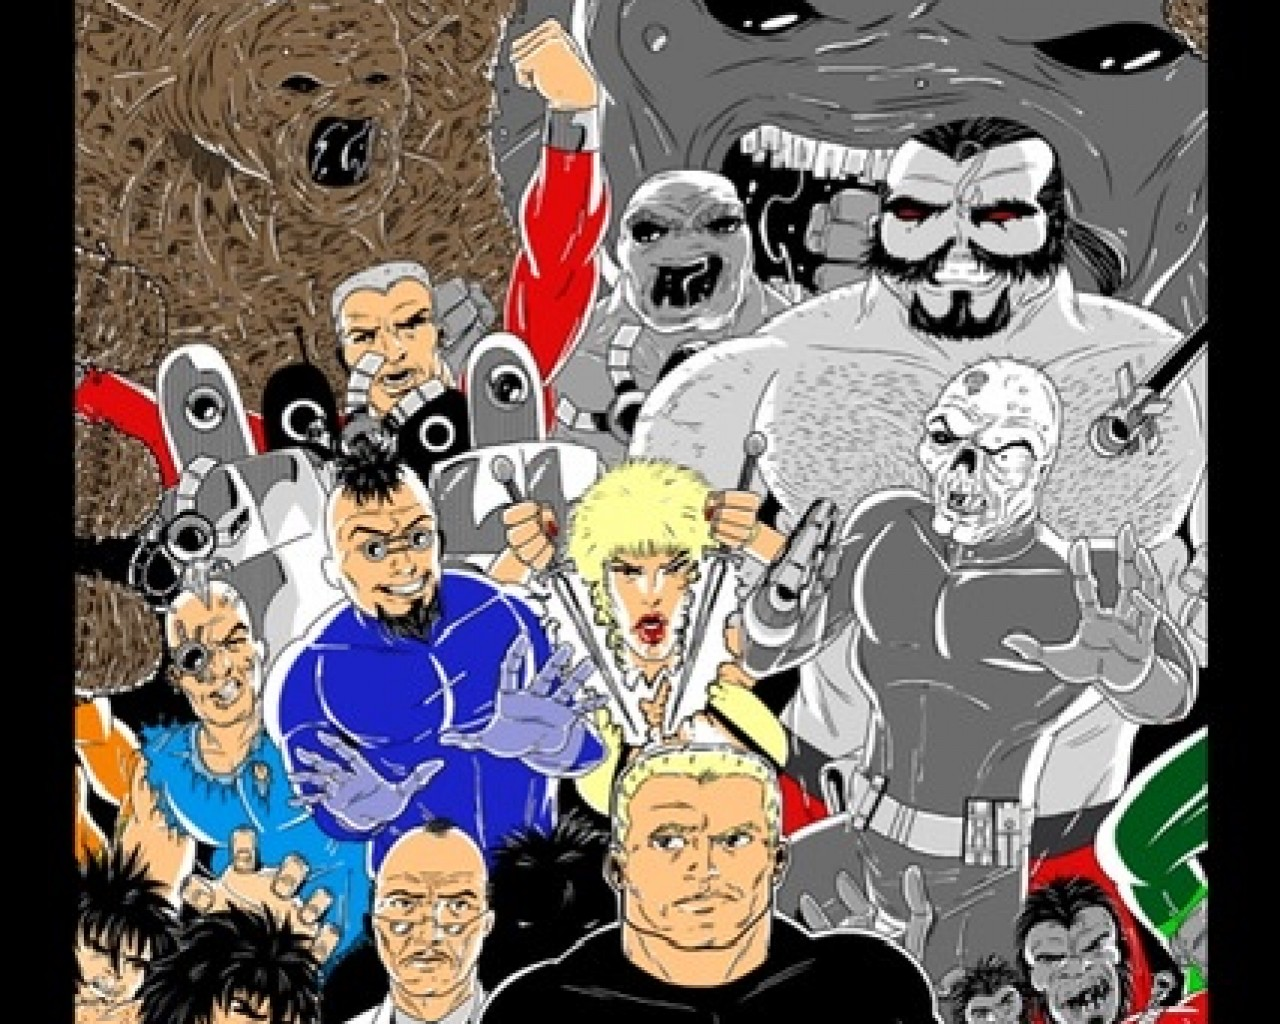 Poster Image for Hyperactive Comics